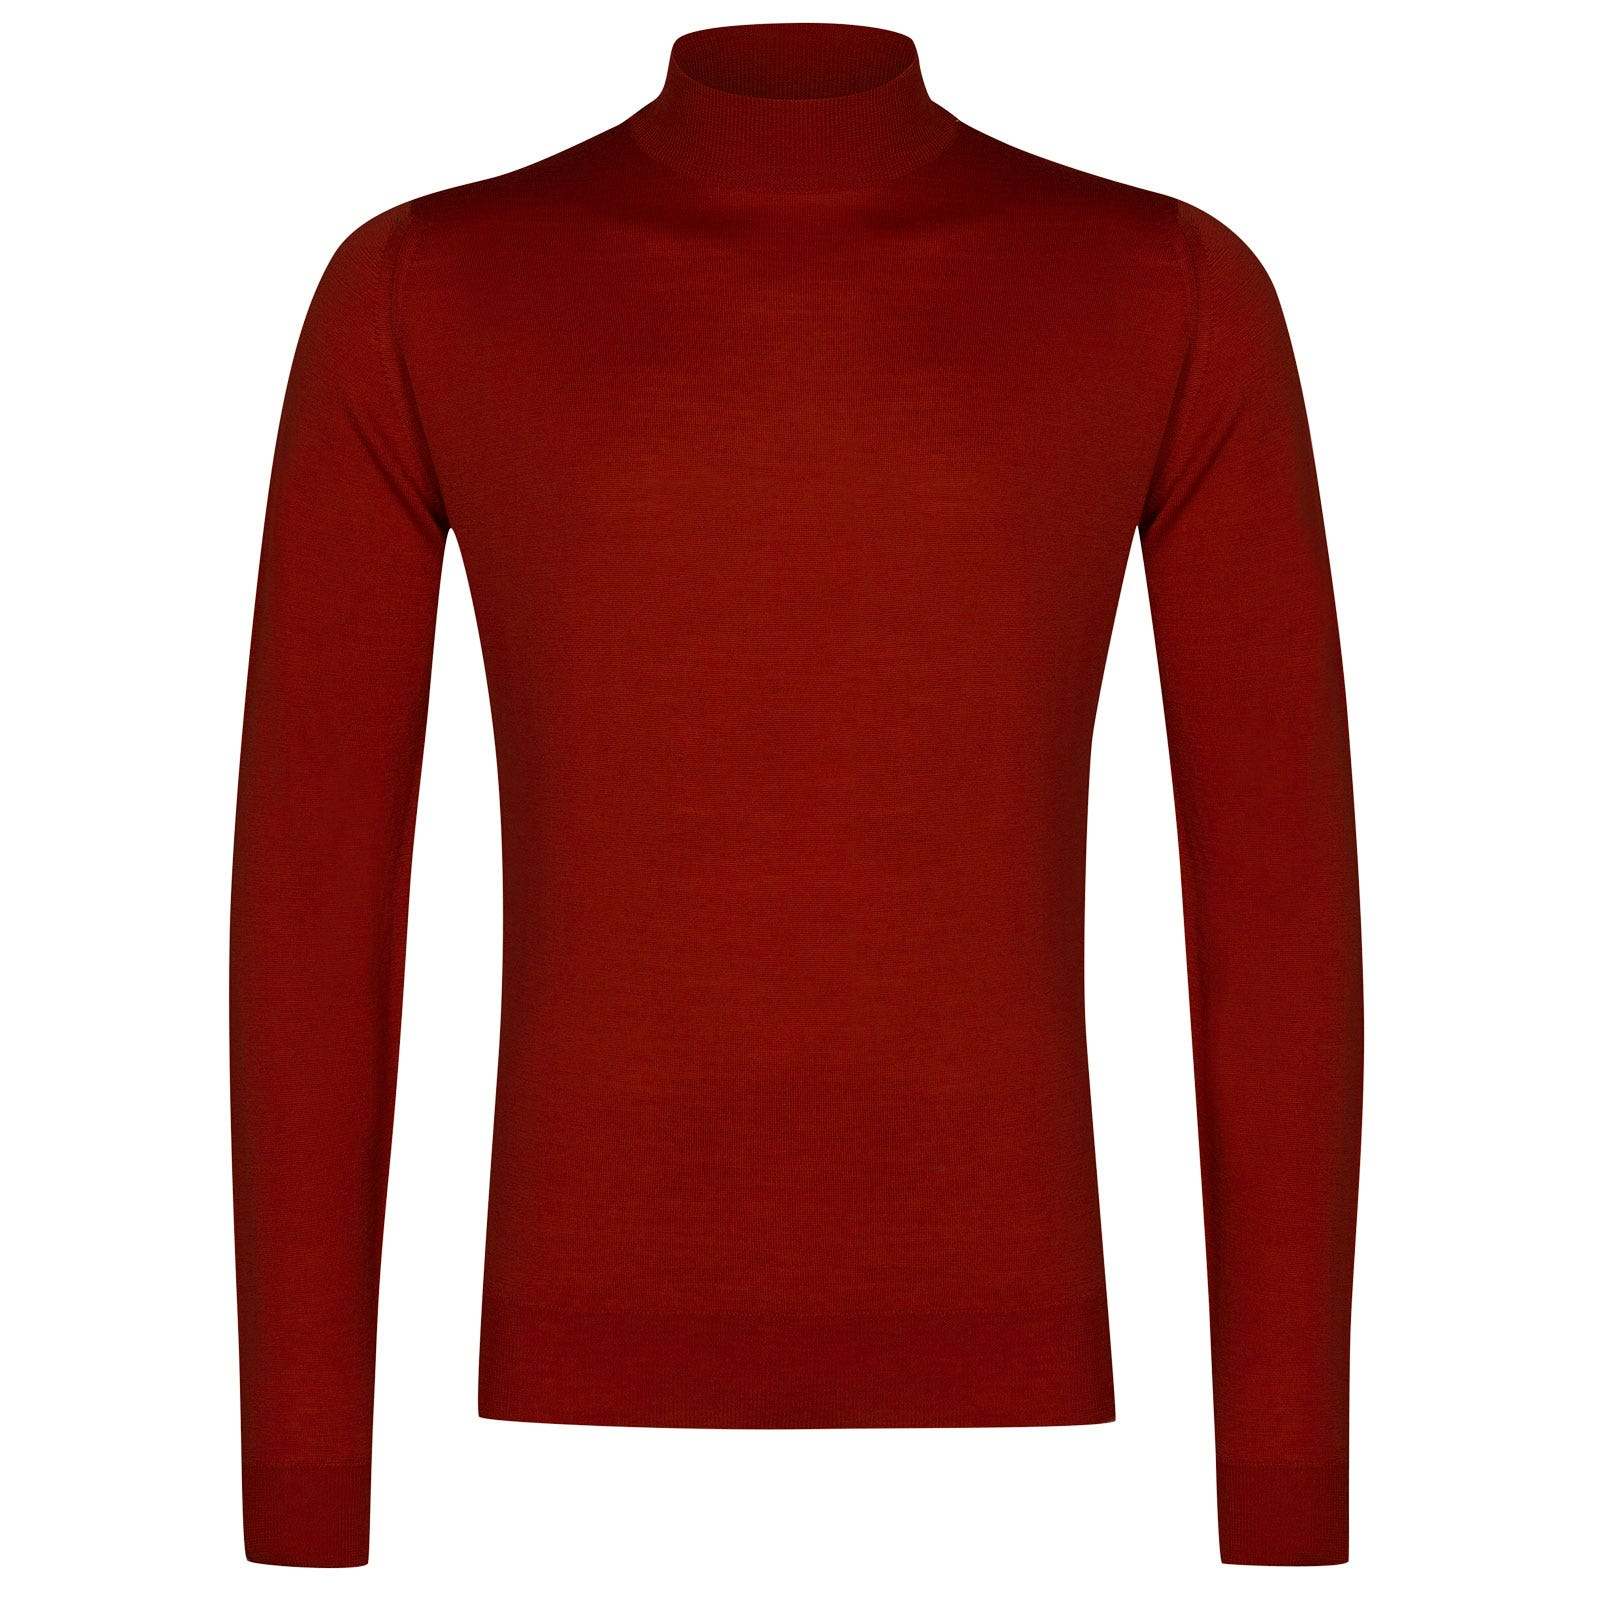 John Smedley Harcourt Merino Wool Pullover in Dandy Red-XL